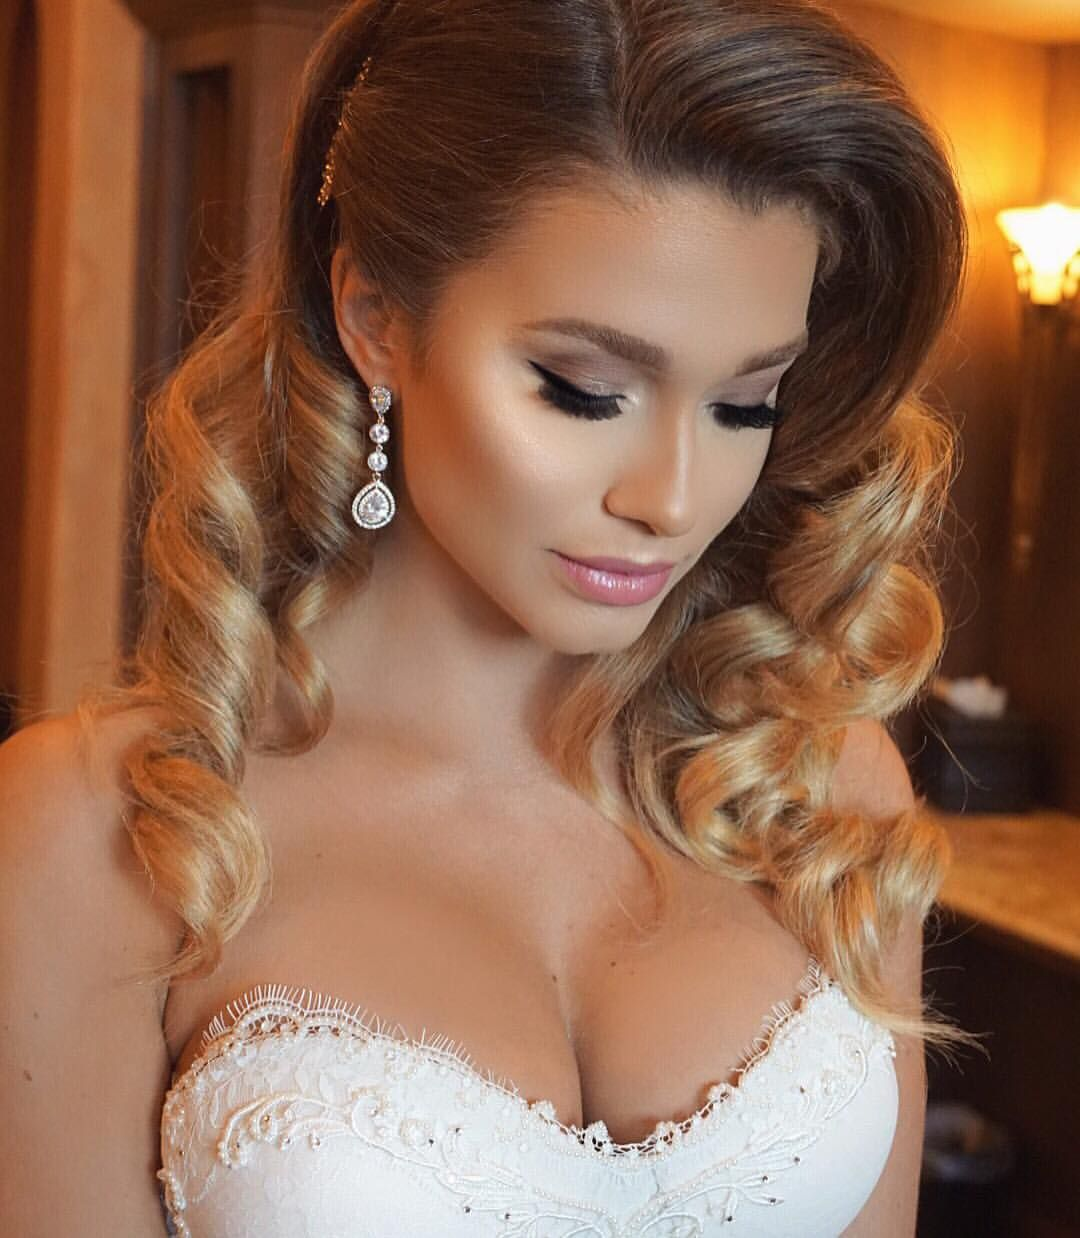 Airbrushed wedding dress  Jade Marie on Instagram ucThe Dreamiest Bride Glowing Airbrush